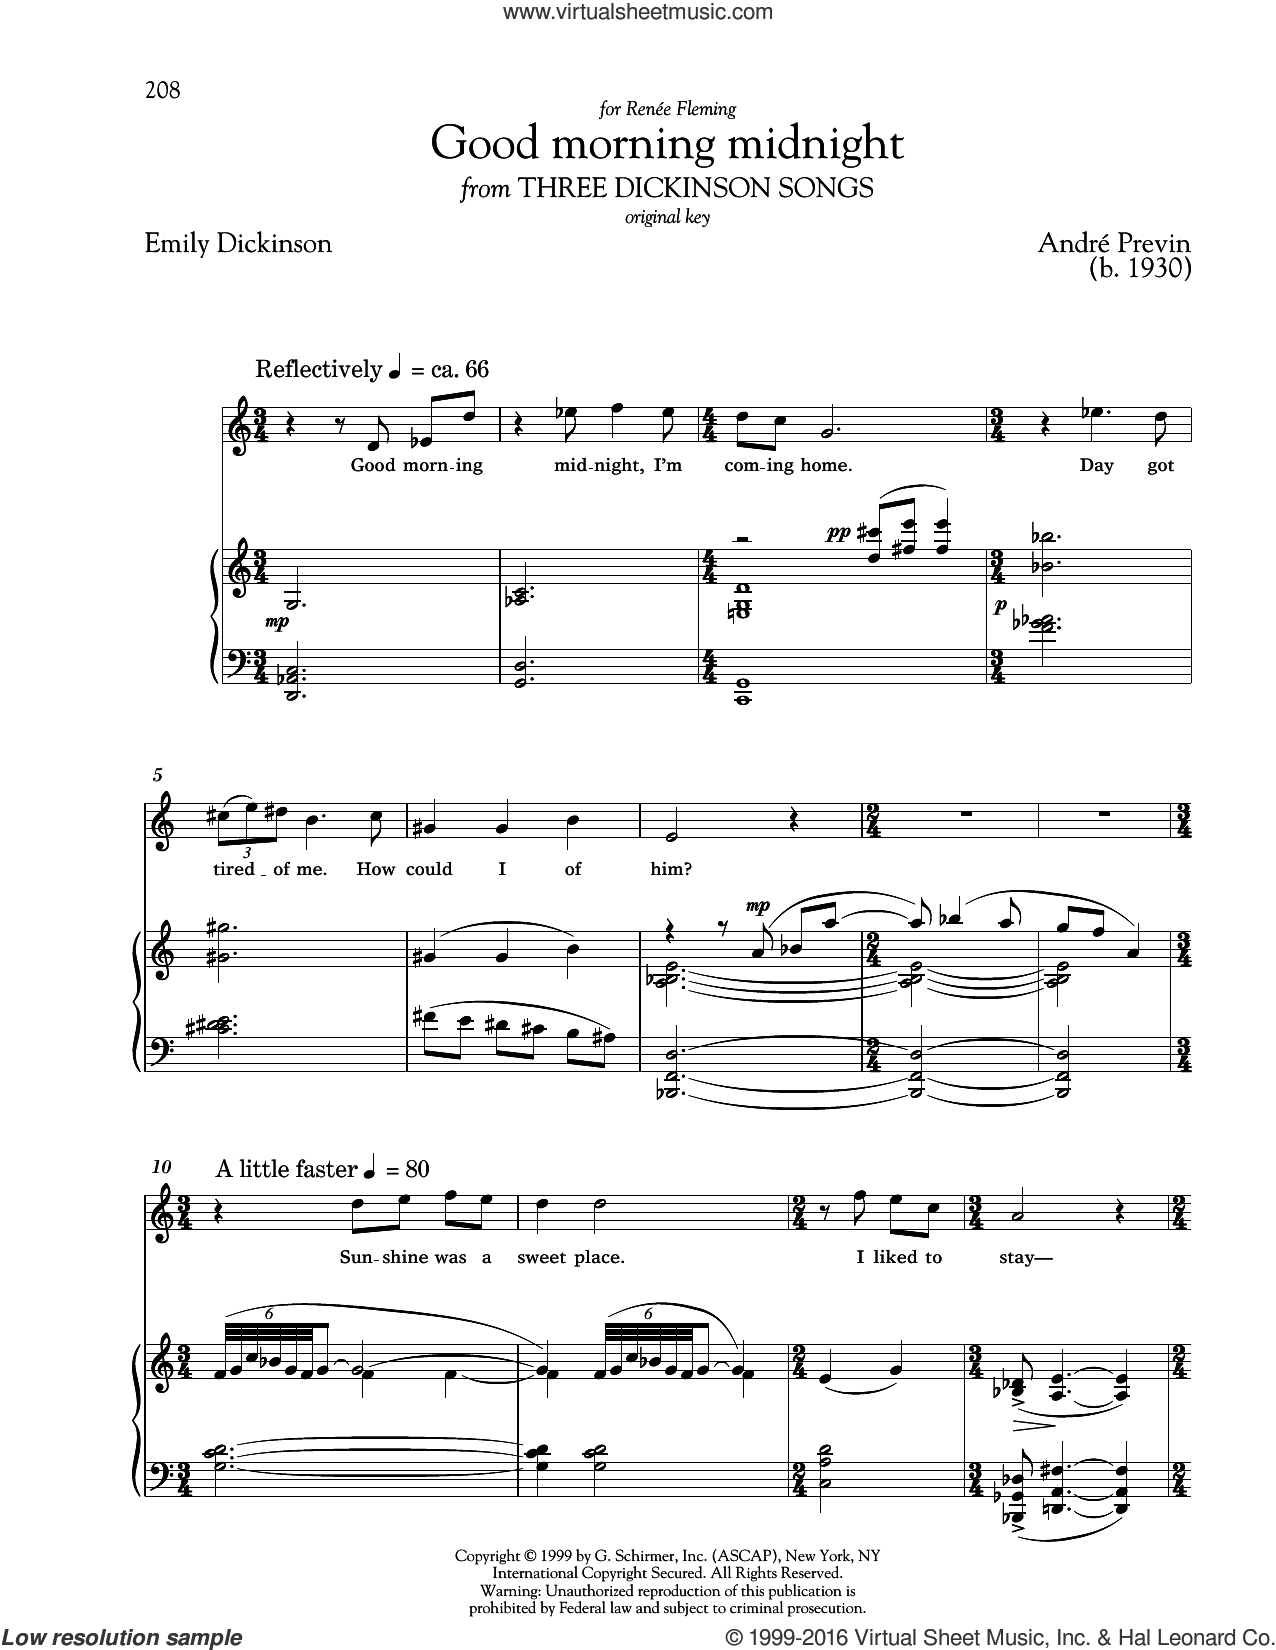 Good Morning Midnight sheet music for voice and piano (High Voice) by Andre Previn, Richard Walters and Emily Dickinson, classical score, intermediate skill level